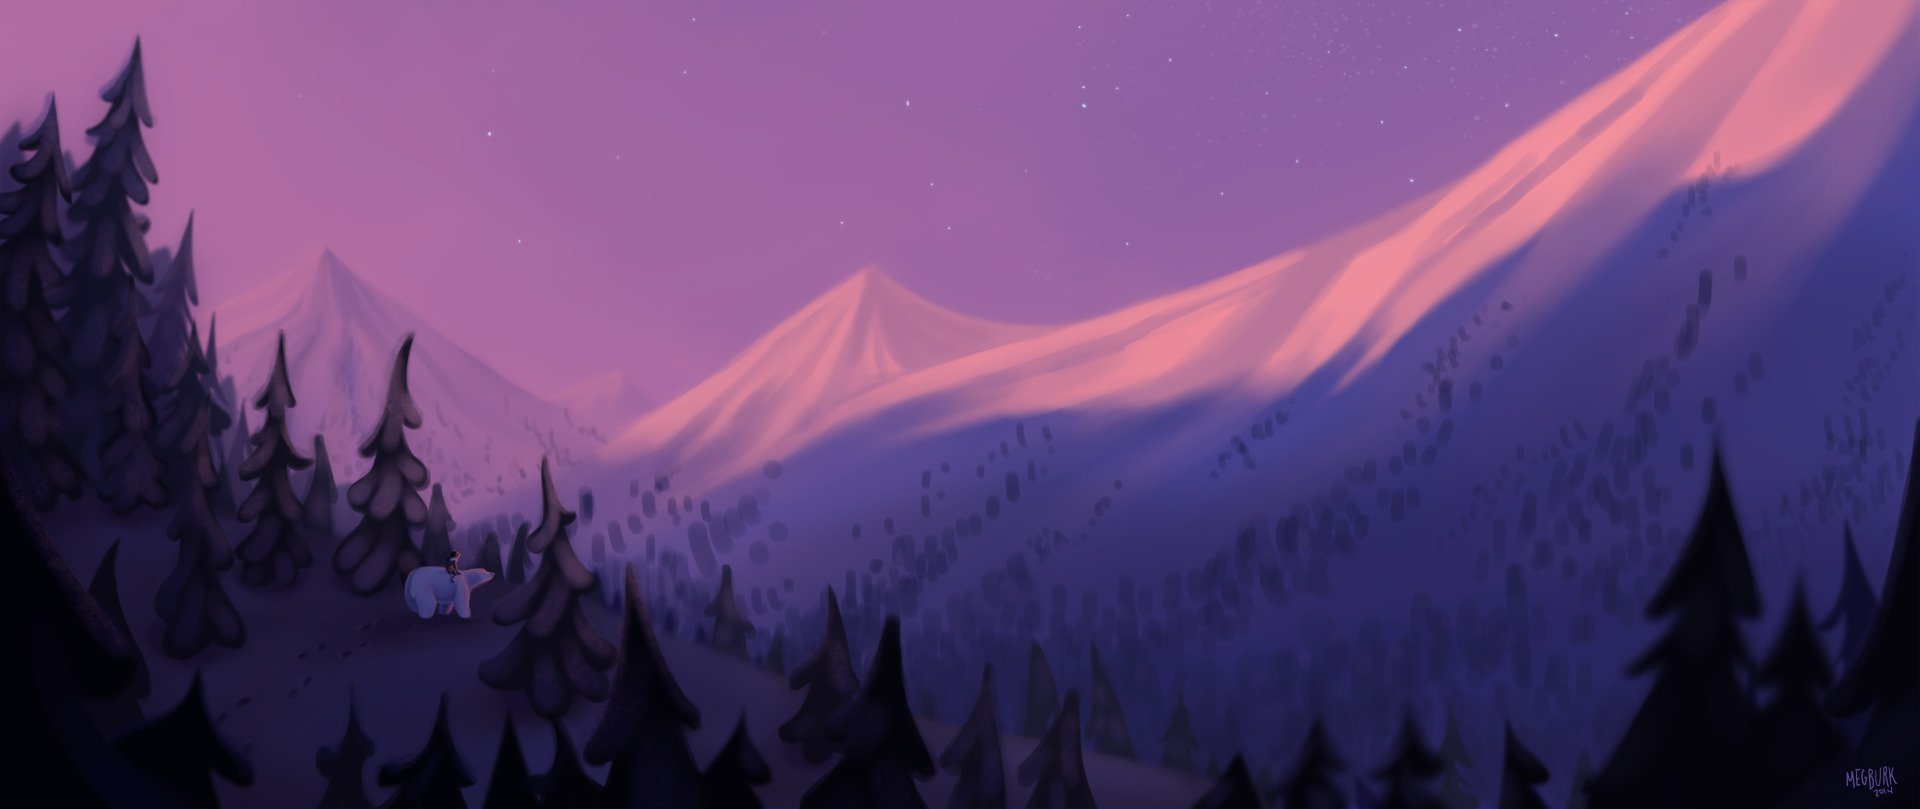 Sunset Mountains - Nanuk - megsketch | ello